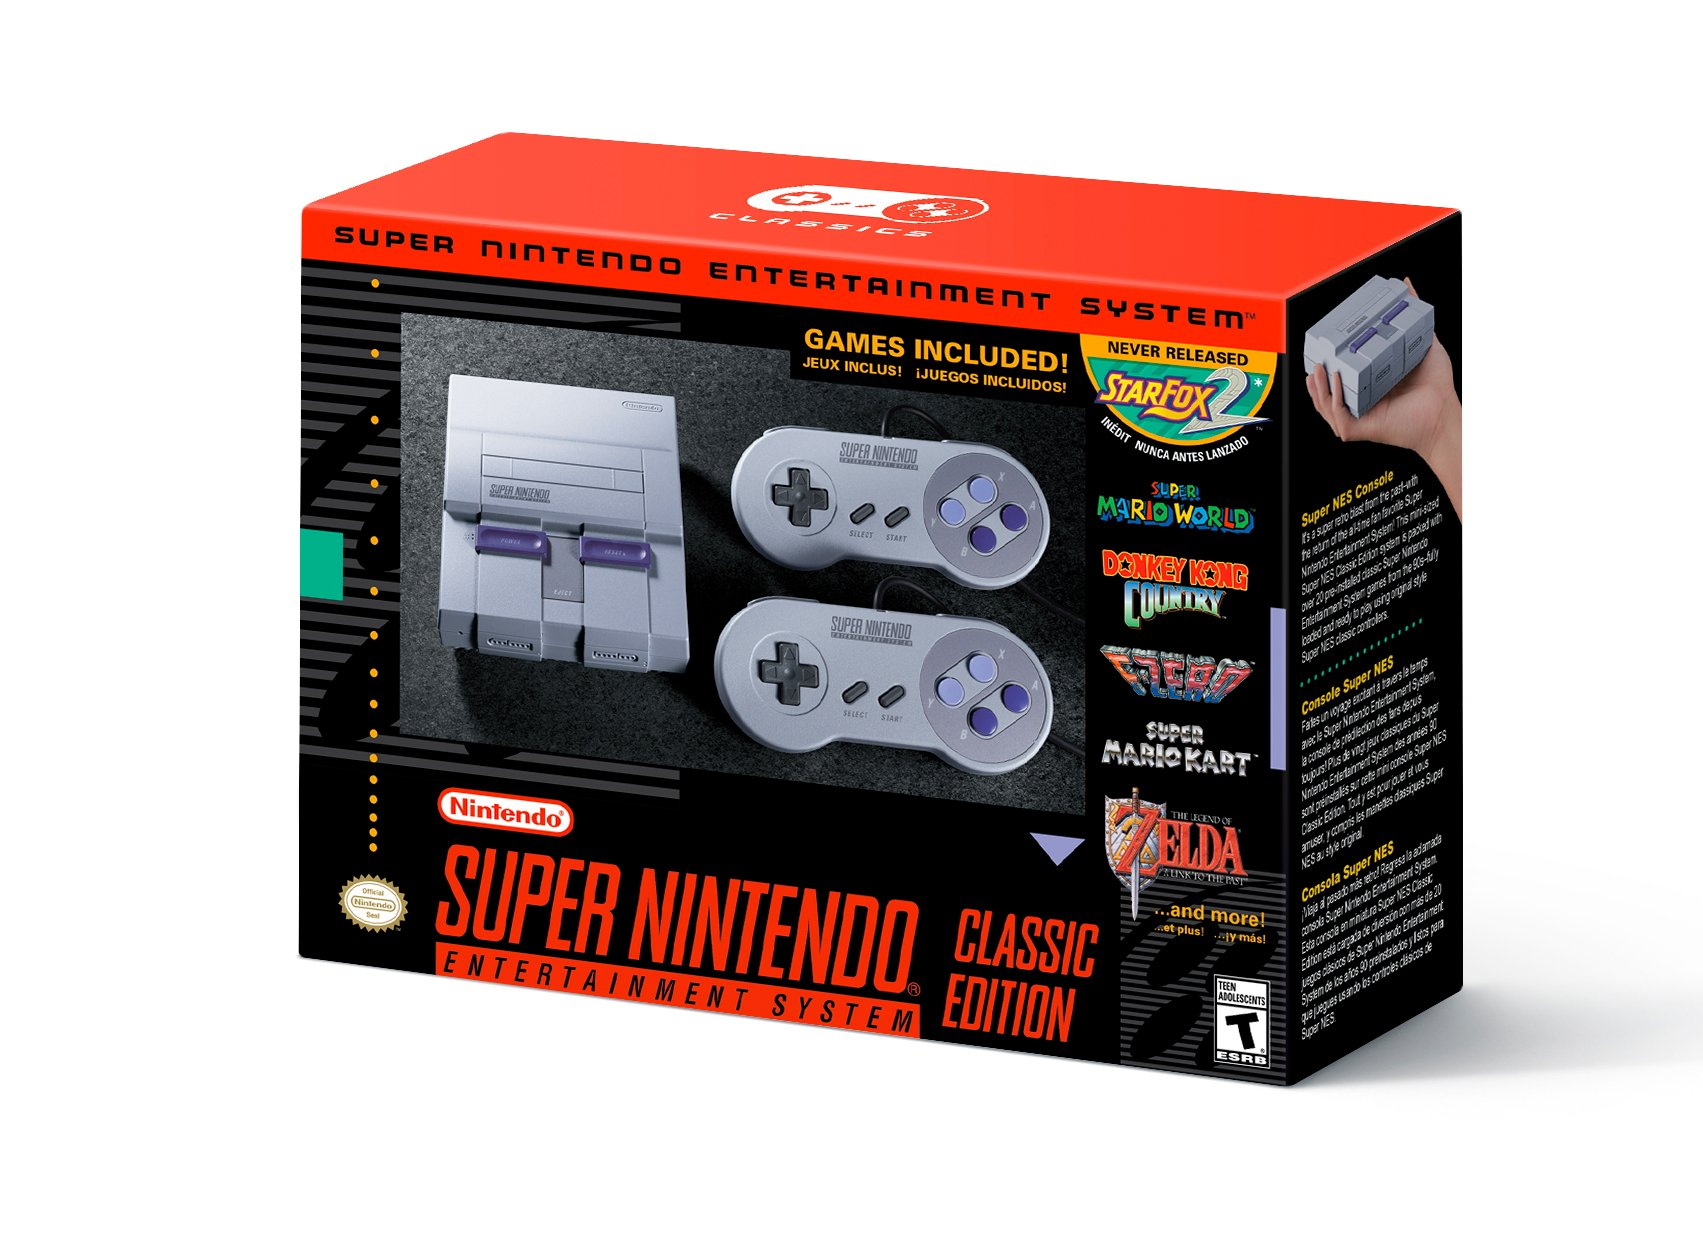 Super Nintendo Classic (Nintendo of America photo)_495920